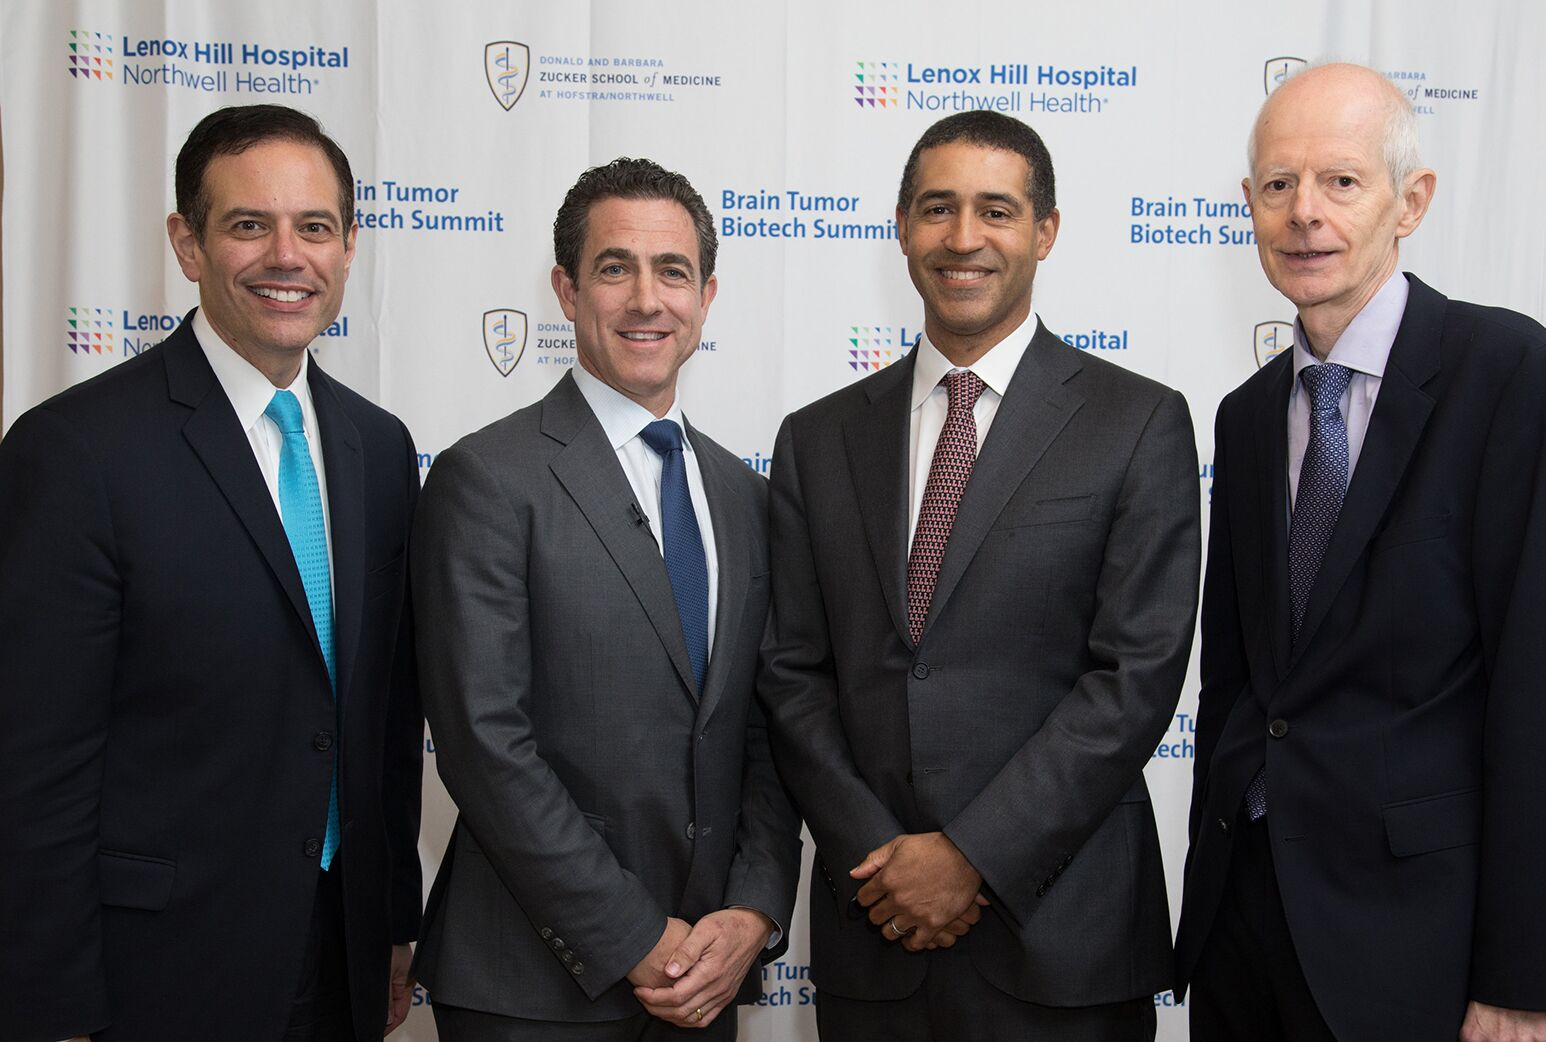 From left: Keynote speaker Steven Kalkanis, MD; John Boockvar, MD; keynote speaker William Curry, MD and Marc Symons, PhD.